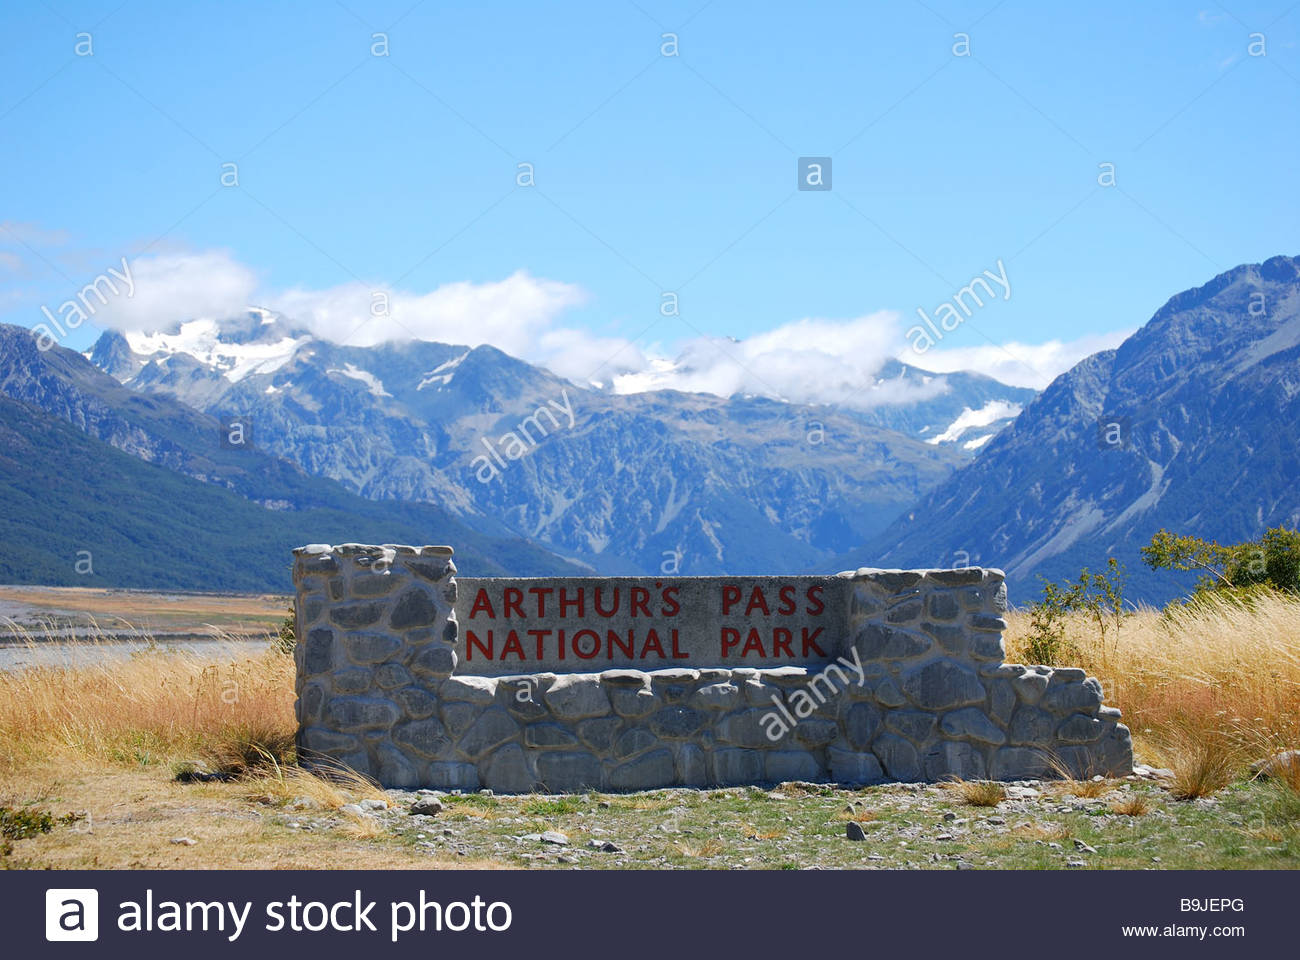 Arthur's Pass National Park Arthur's Pass, Entrance sign, Arthur's Pass National Park, Canterbury, South ...